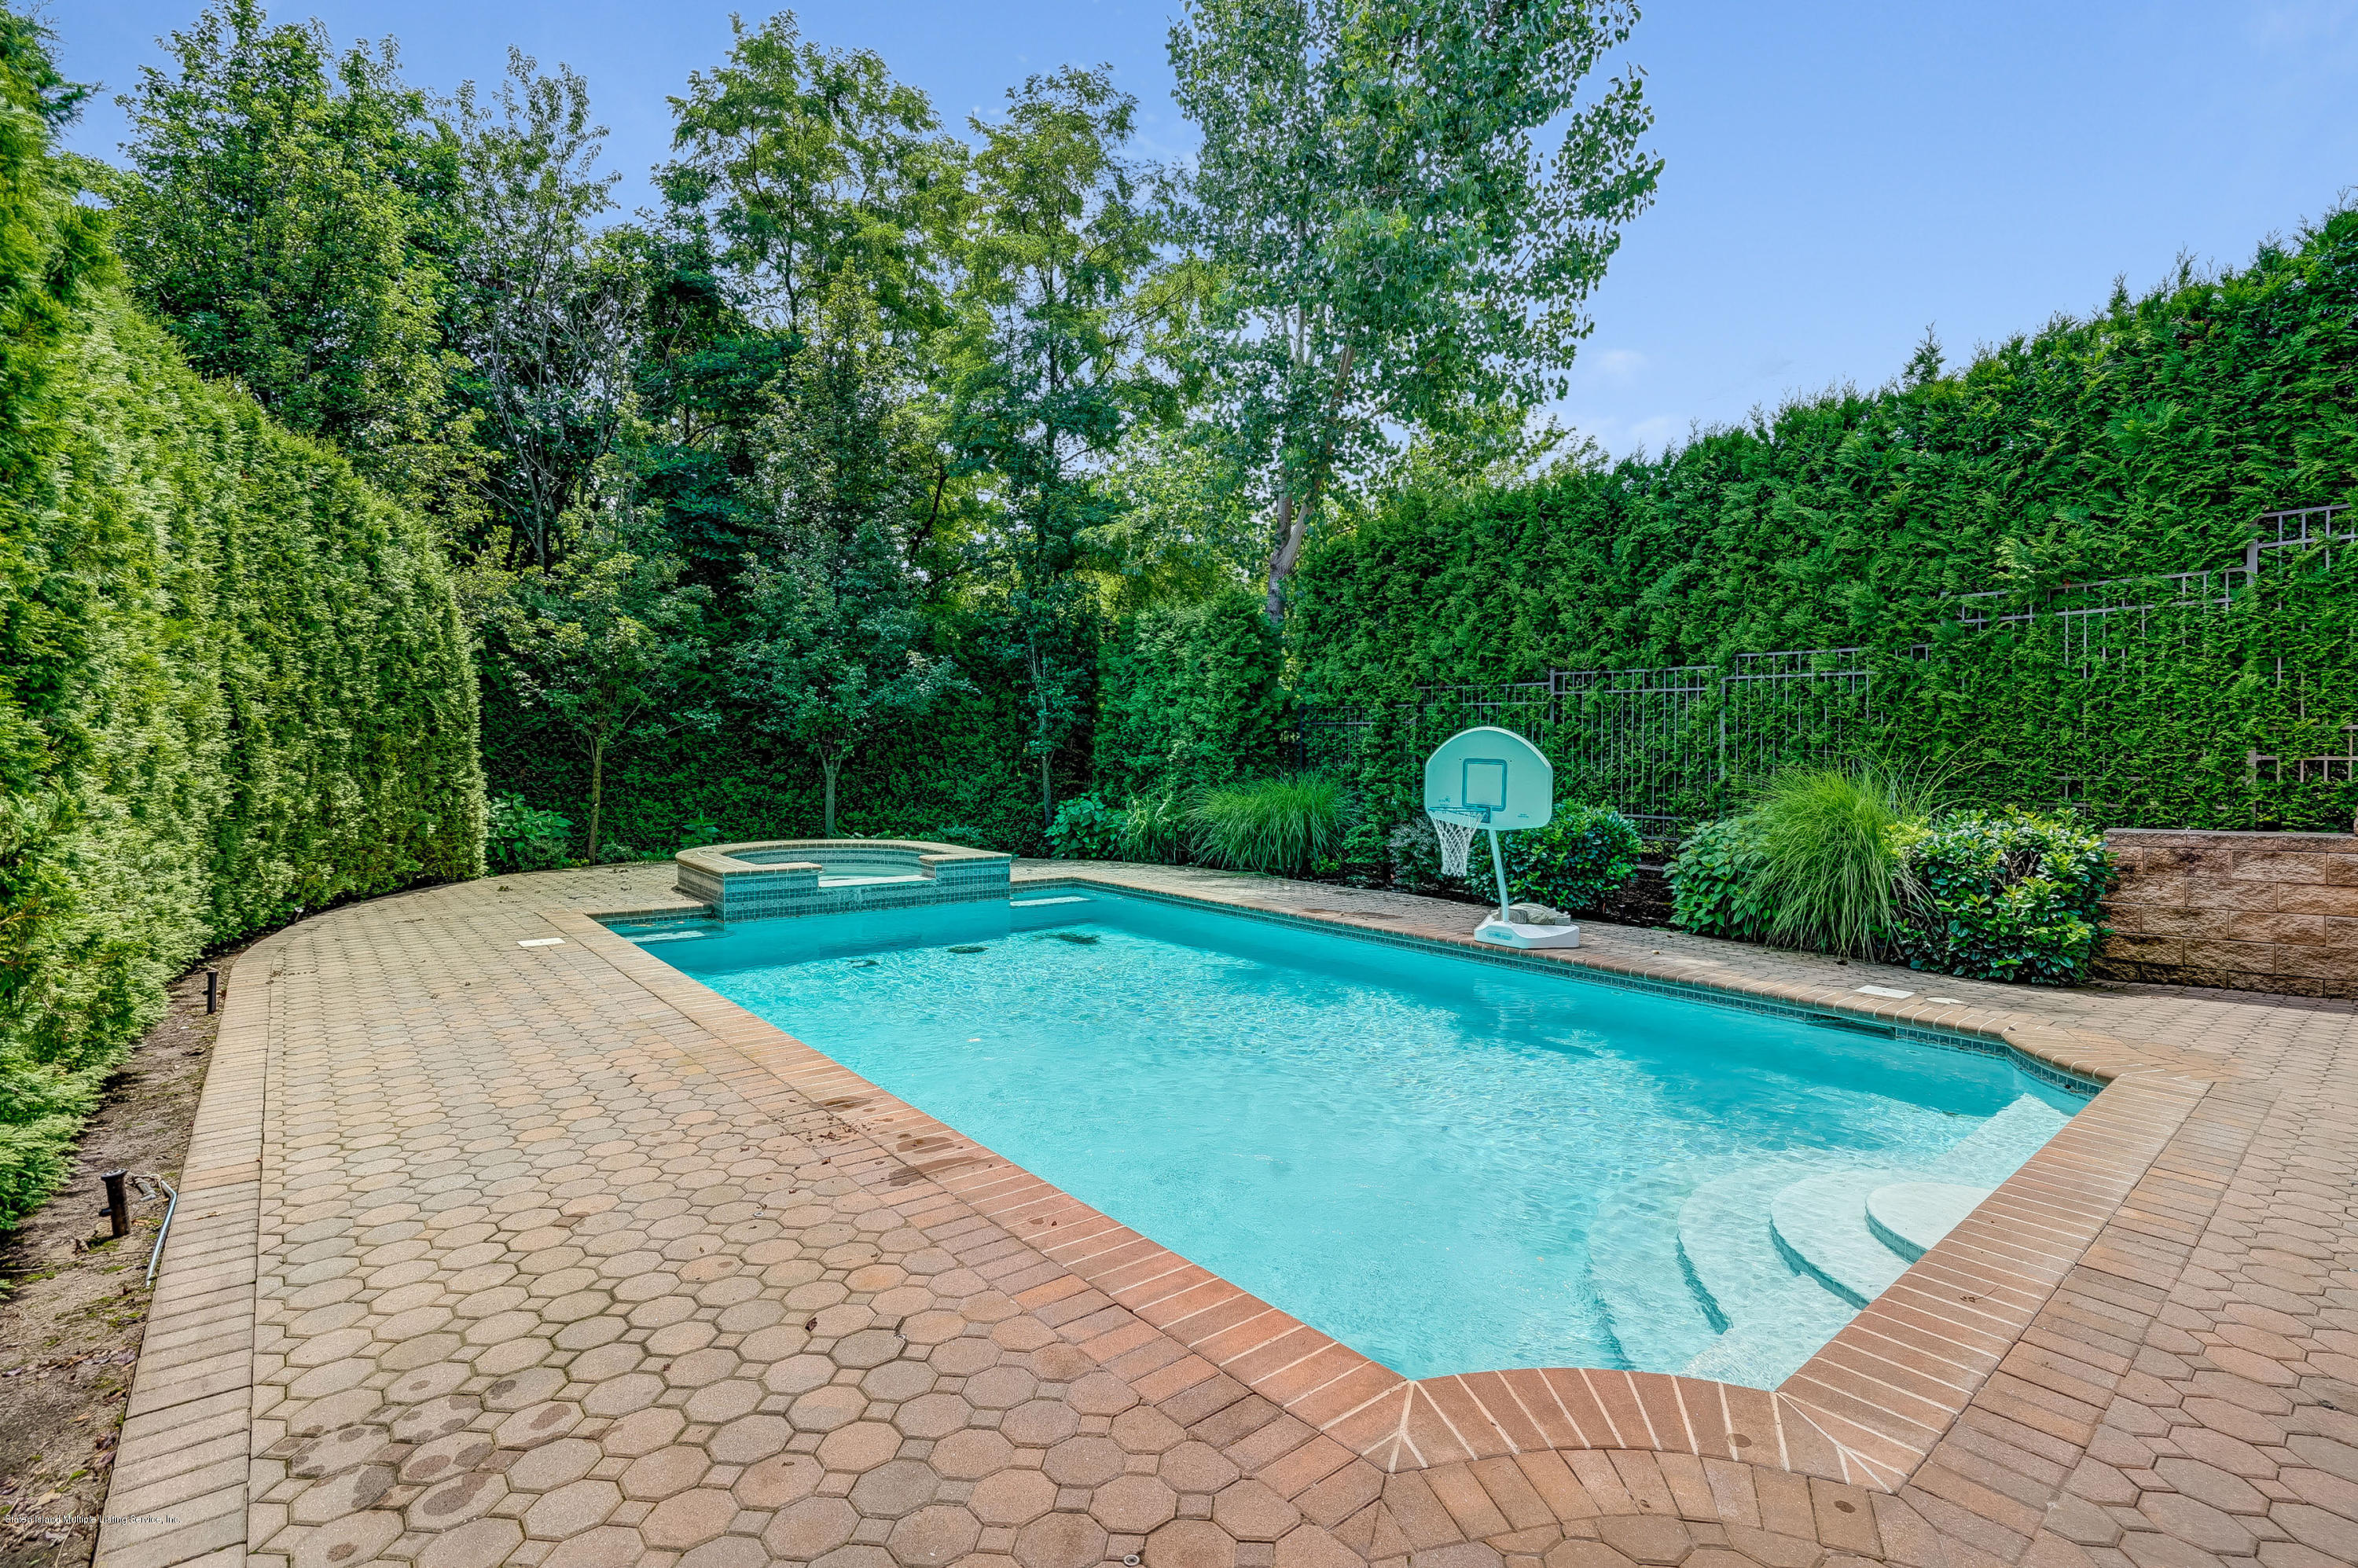 444 Flagg Place,Staten Island,New York,10304,United States,6 Bedrooms Bedrooms,9 Rooms Rooms,7 BathroomsBathrooms,Residential,Flagg,1121526